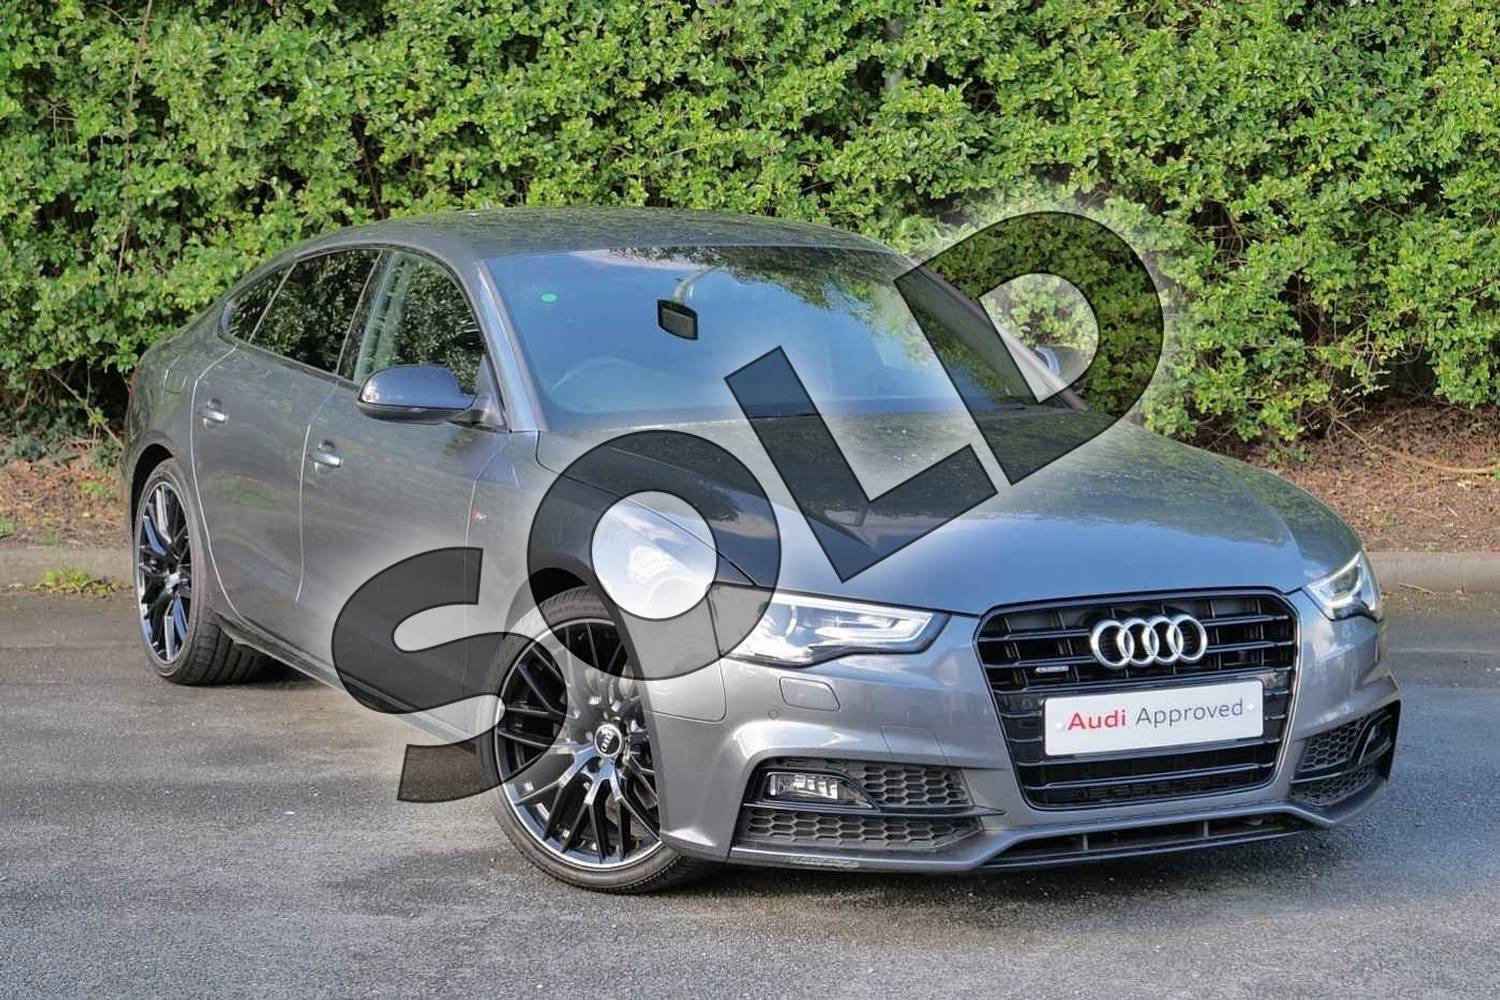 2016 Audi A5 Sportback Special Editions 2.0 TDI 190 Quattro Black Ed Plus 5dr S Tronic 5st in Daytona Grey Pearlescent at Worcester Audi